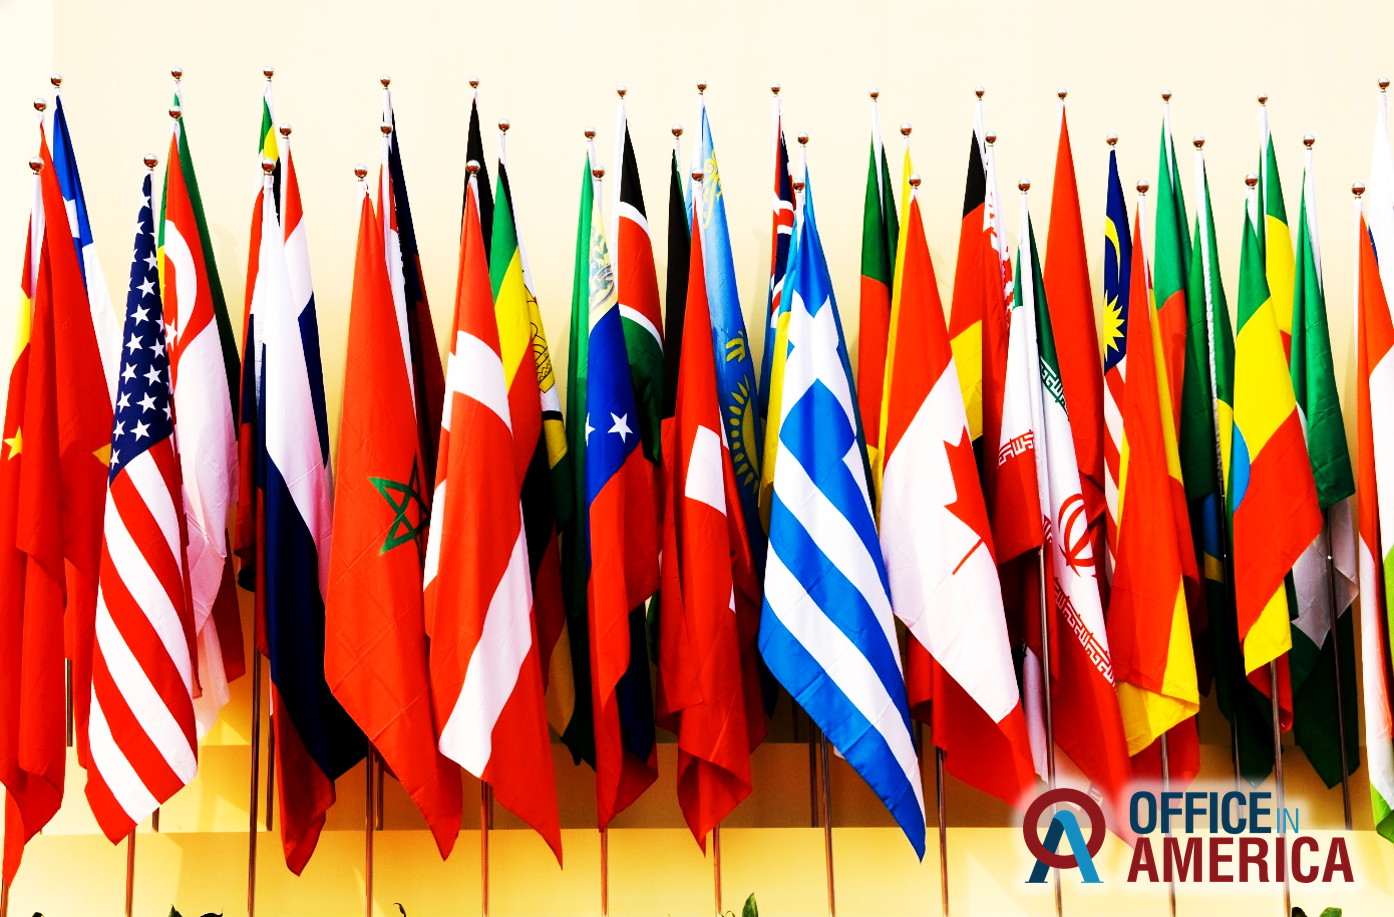 International Business Flags